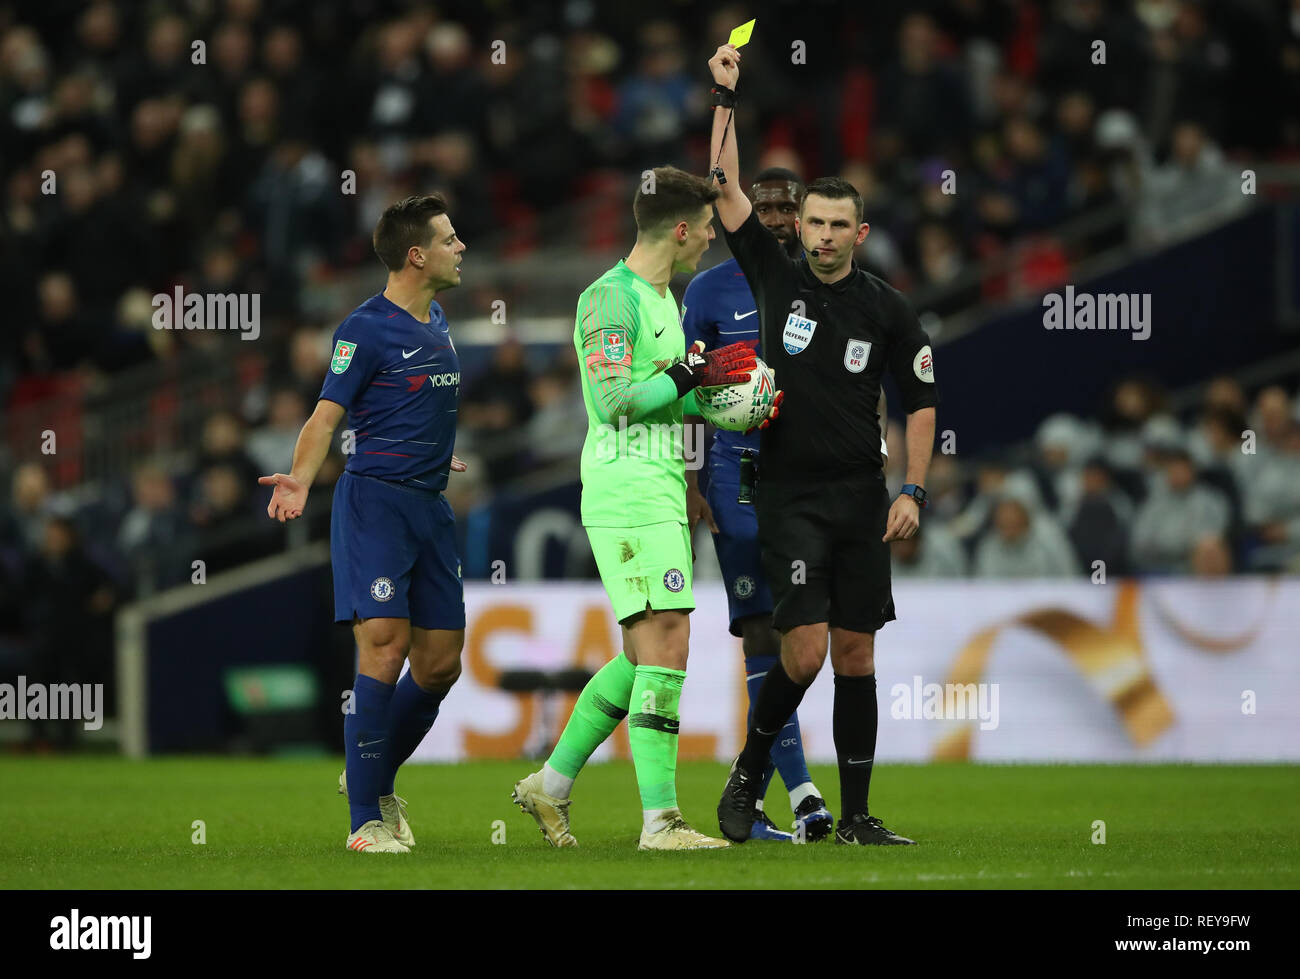 Chelsea goalkeeper Kepa Arrizabalaga is booked by referee Michael Oliver after foul on Tottenham Hotspur's Harry Kane who earned a penalty during the Carabao Cup, semi final match at Wembley, London. - Stock Image